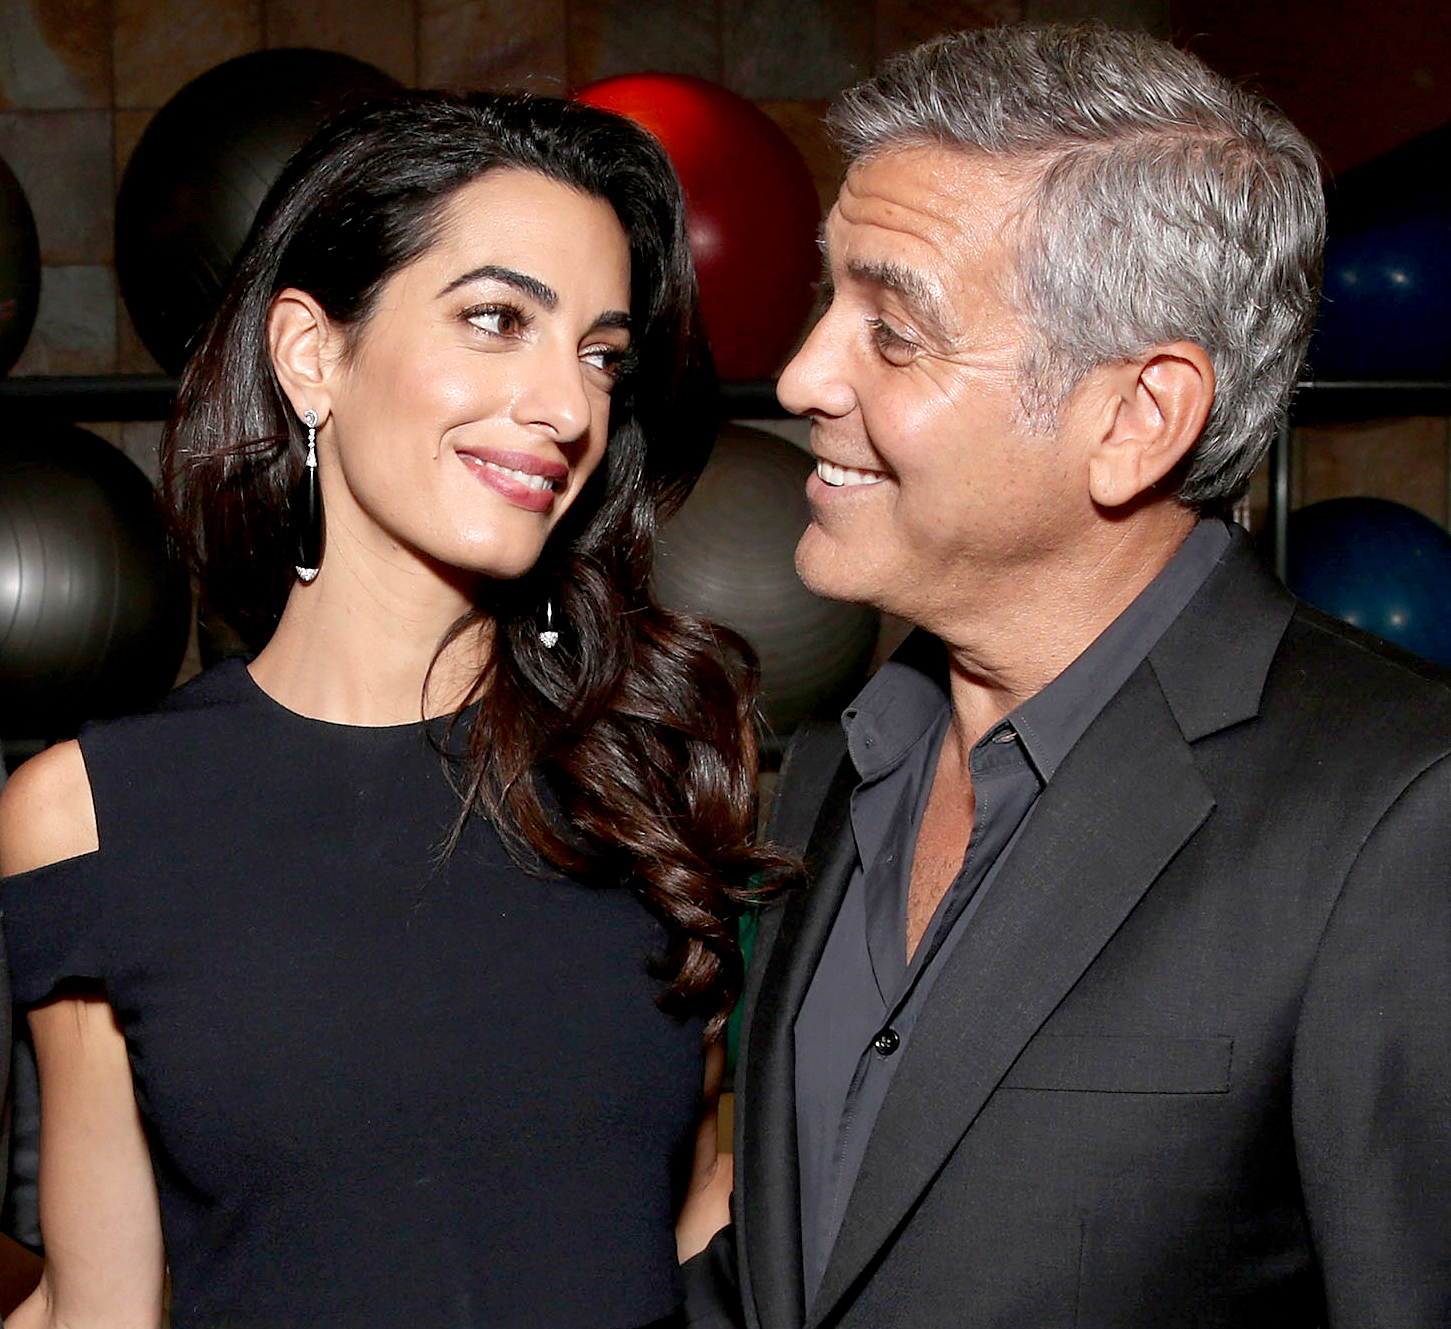 Amal Clooney and George Clooney attend the MPTF 95th anniversary celebration with 'Hollywood's Night Under the Stars' at MPTF Wasserman Campus on Oct. 1, 2016, in Los Angeles.